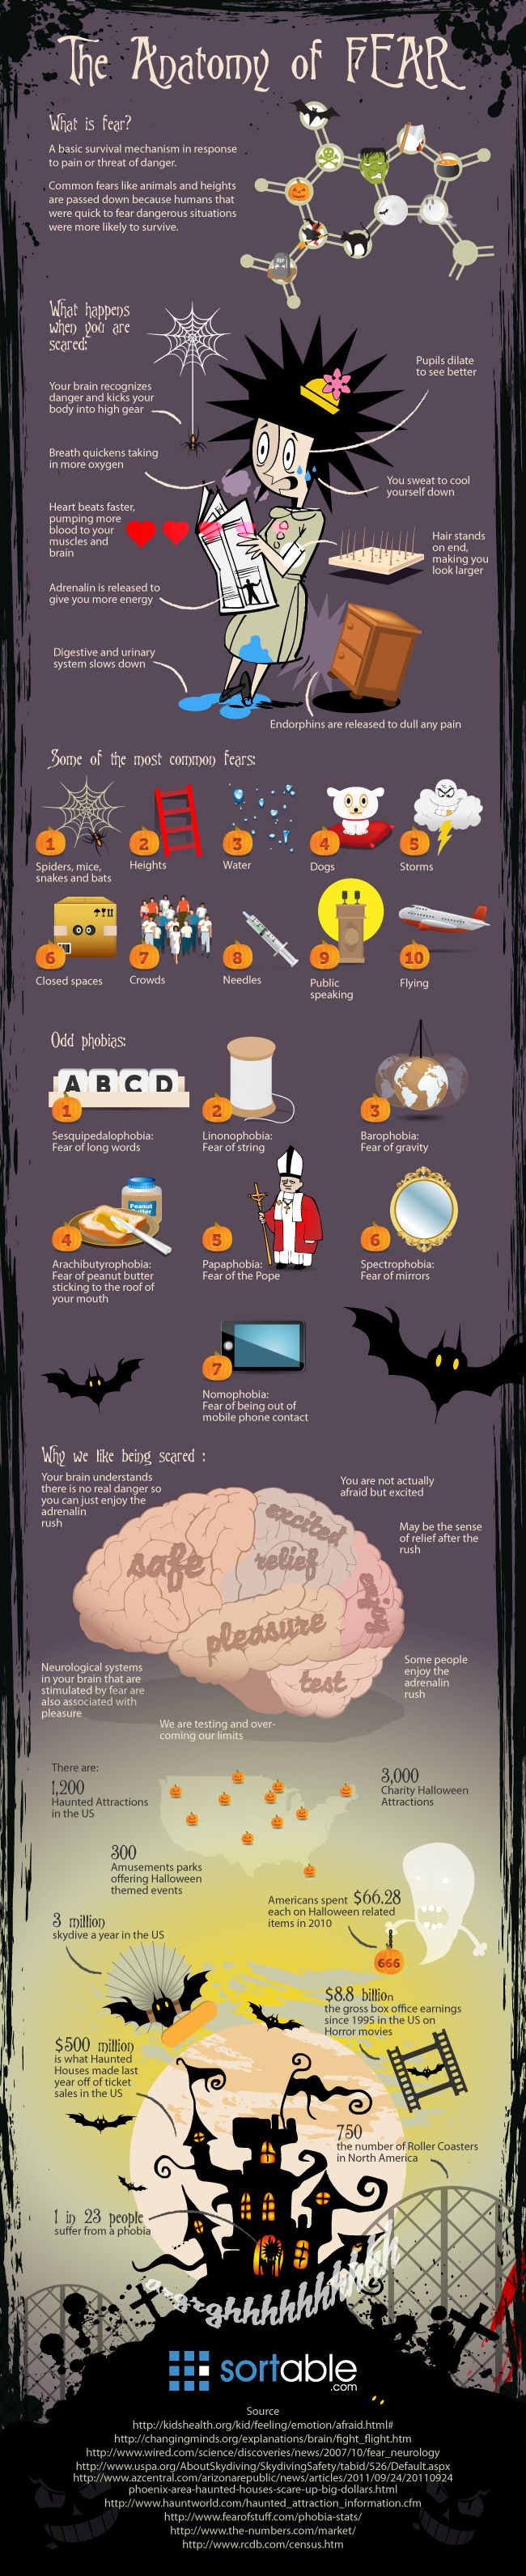 I'm super afraid of spiders. I'm sure most people have one or 2 fears. Check out this infographic and dissect fears!